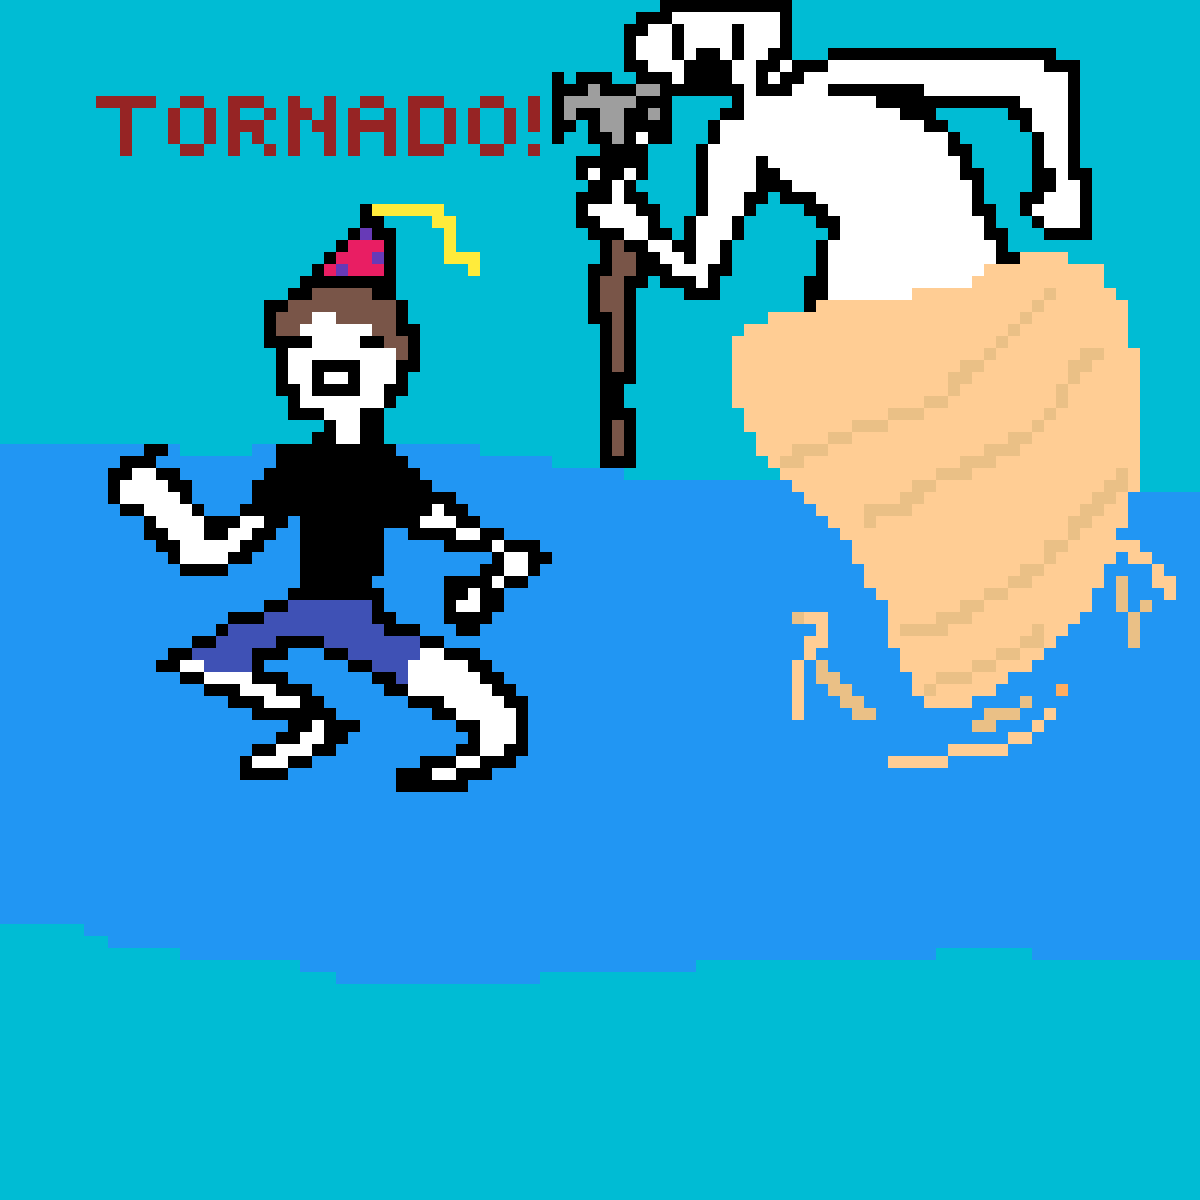 TORNADO@!!! by Dontgivepencil